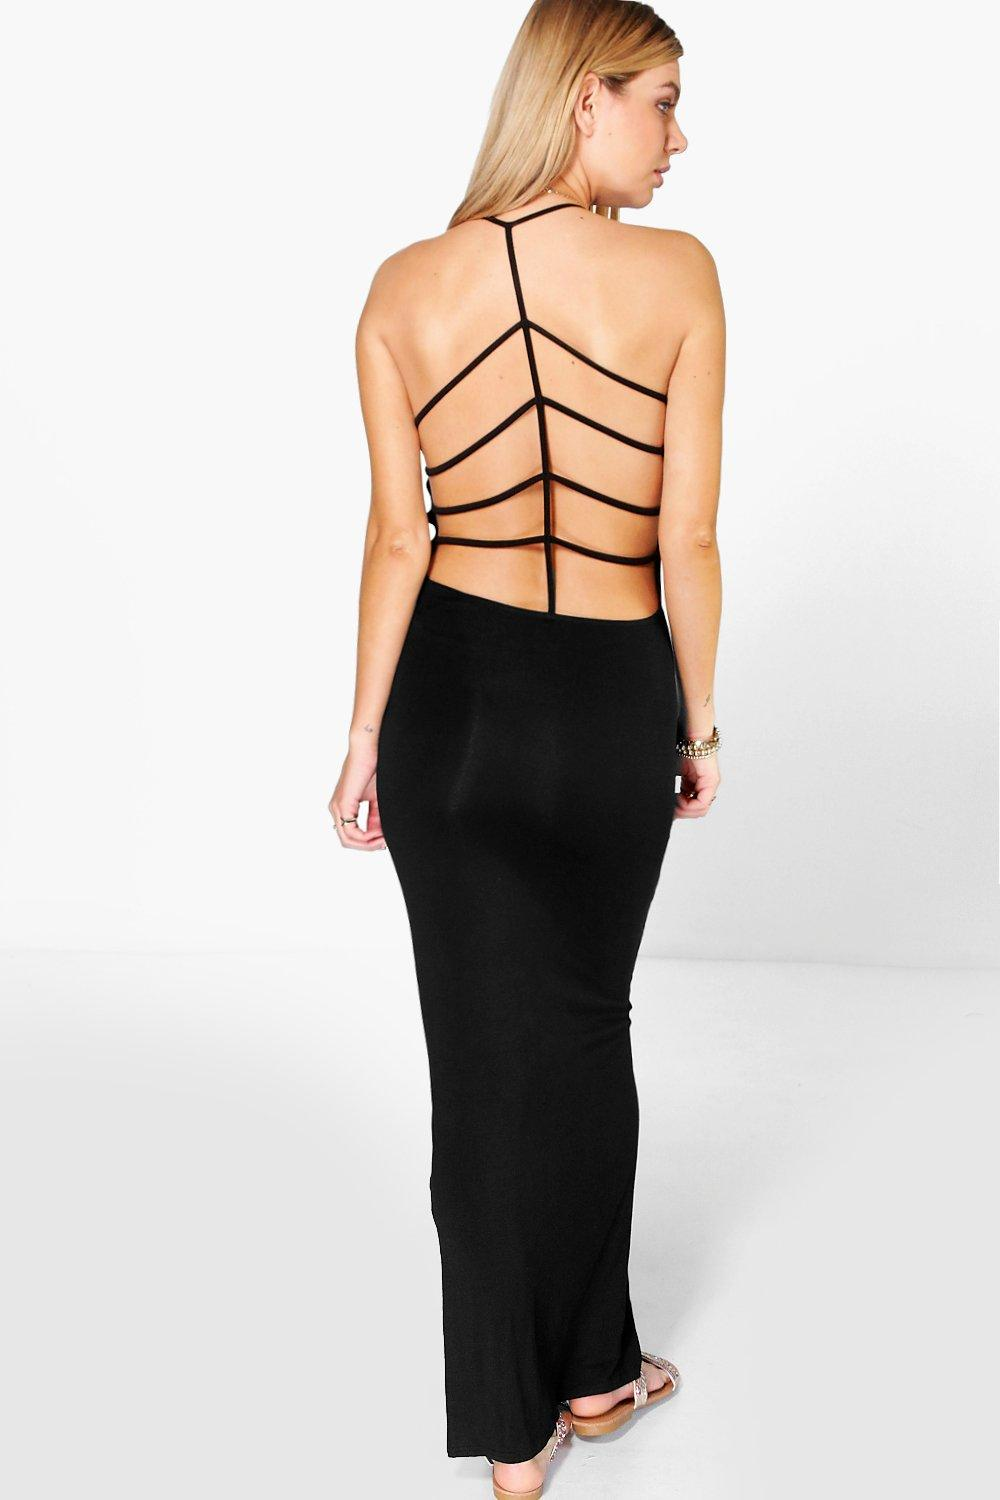 Tanah Strappy Back Maxi Dress